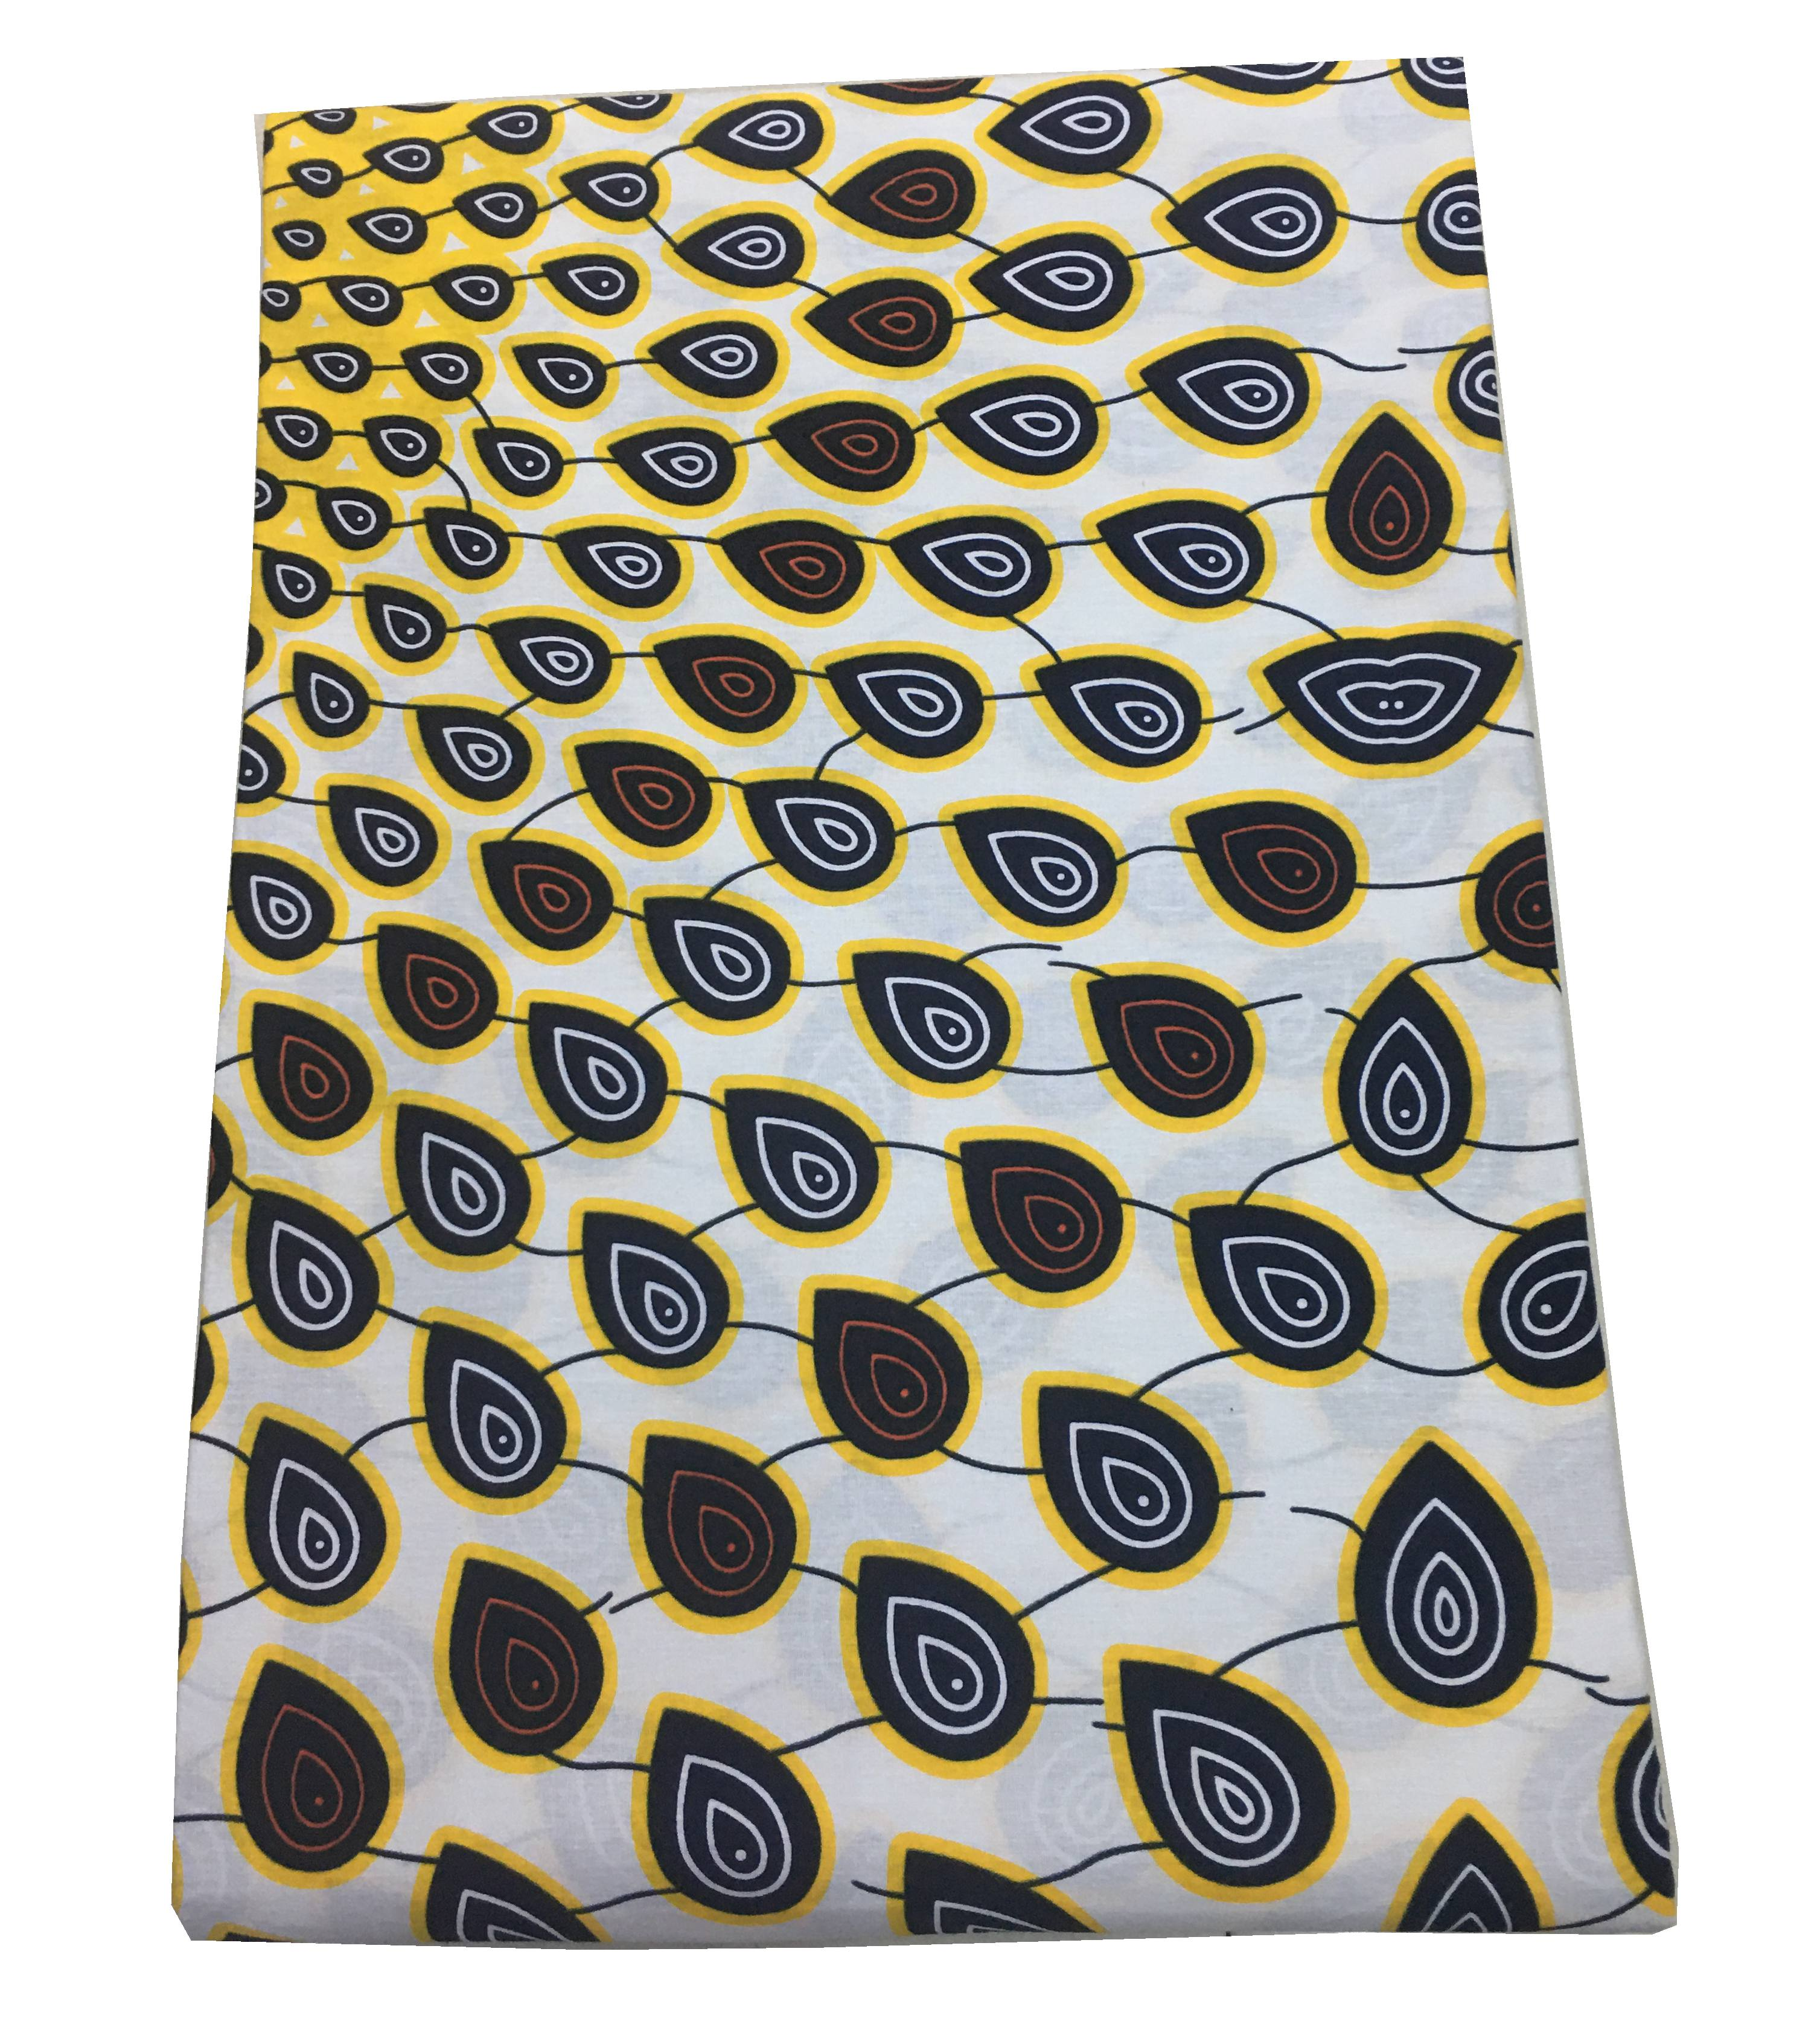 100% cotton New Style Ankara African Prints Fabric Duct Hollandais african